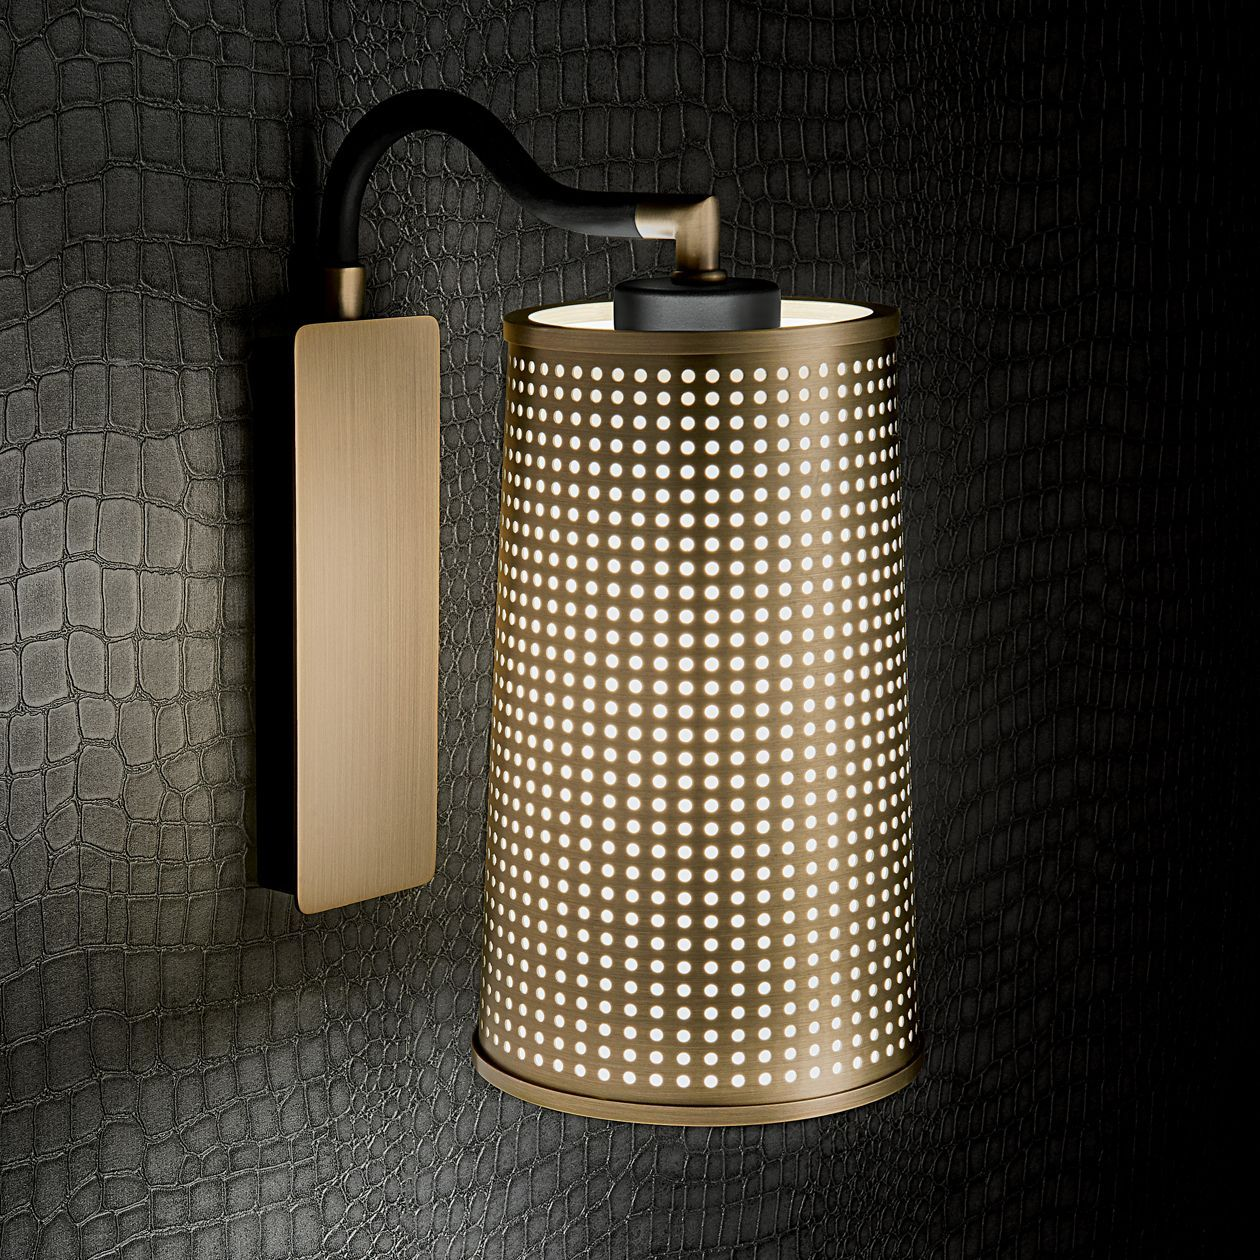 Roma Wall Light Rm 9 W1 Chelsom Bedroomlamps Wall Lamp Wall Lights Bedroom Wall Lights Uk